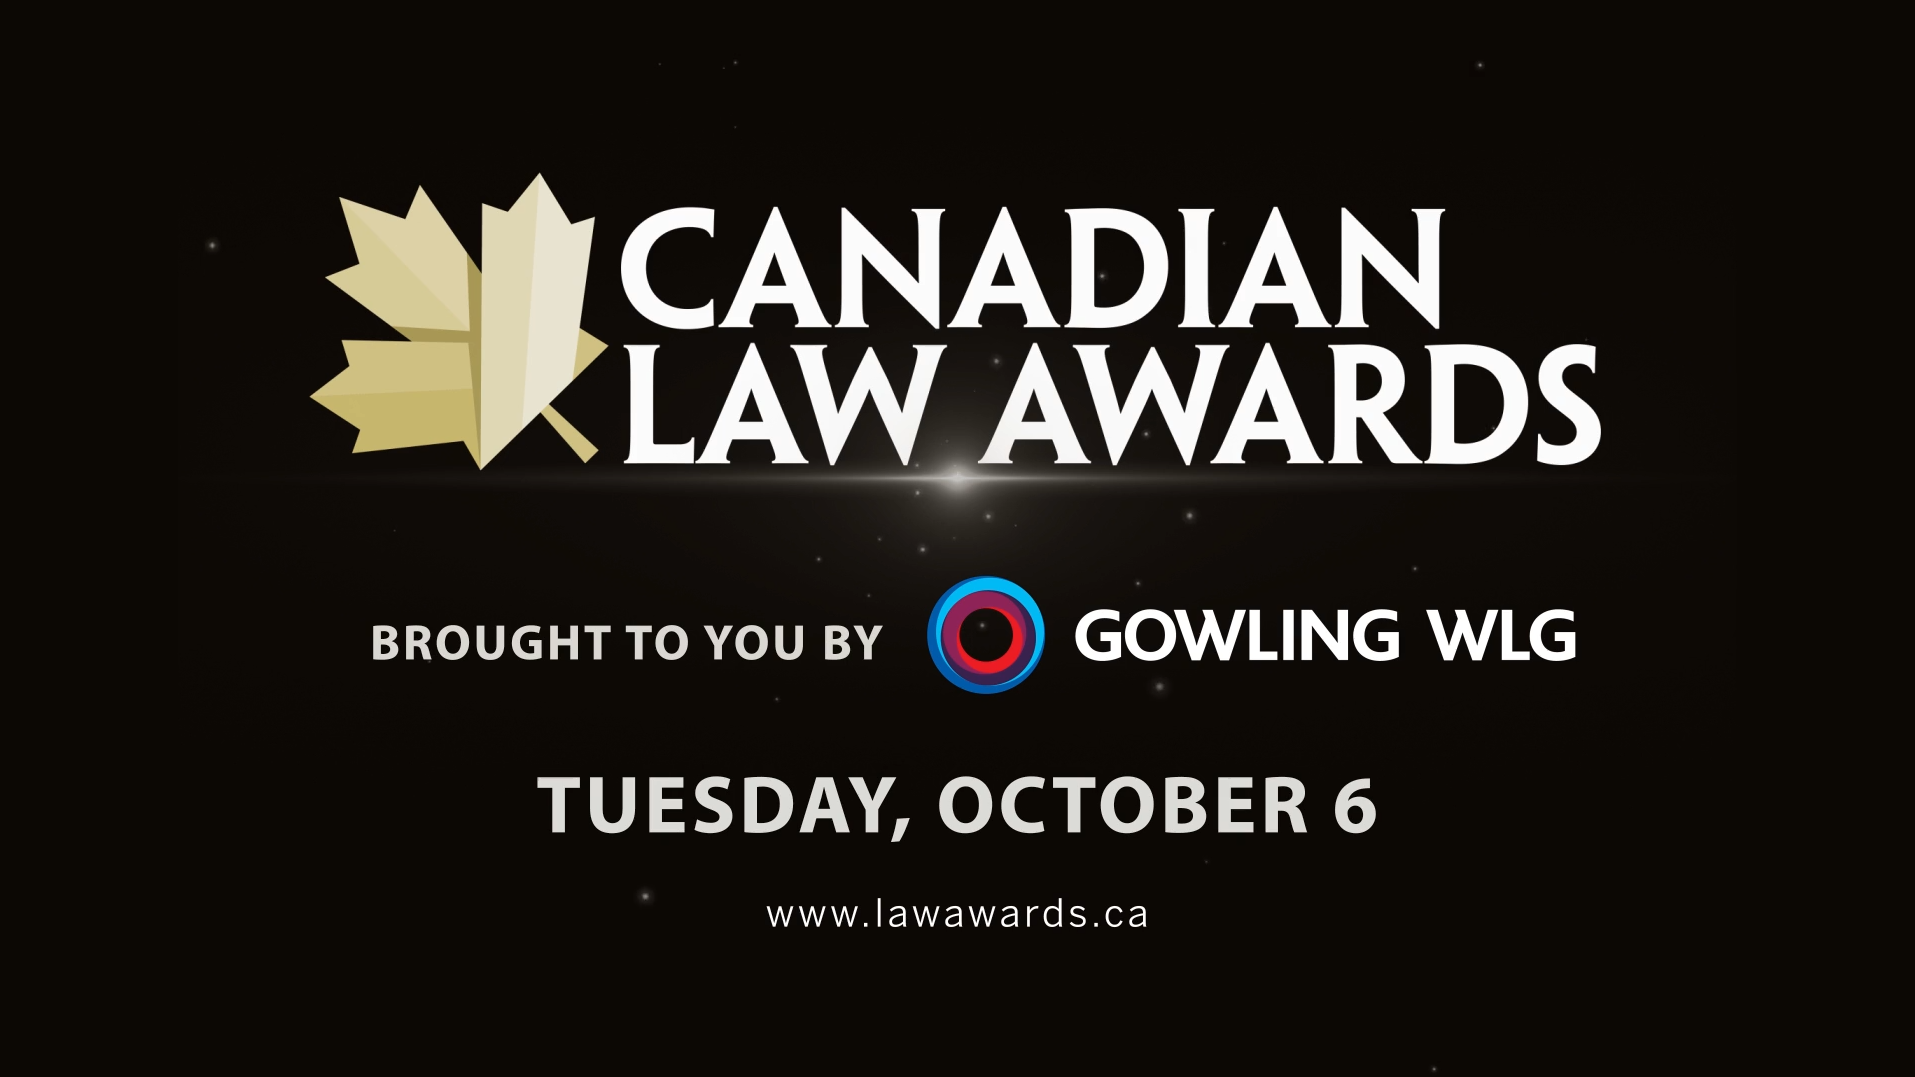 Introducing the virtual Canadian Law Awards